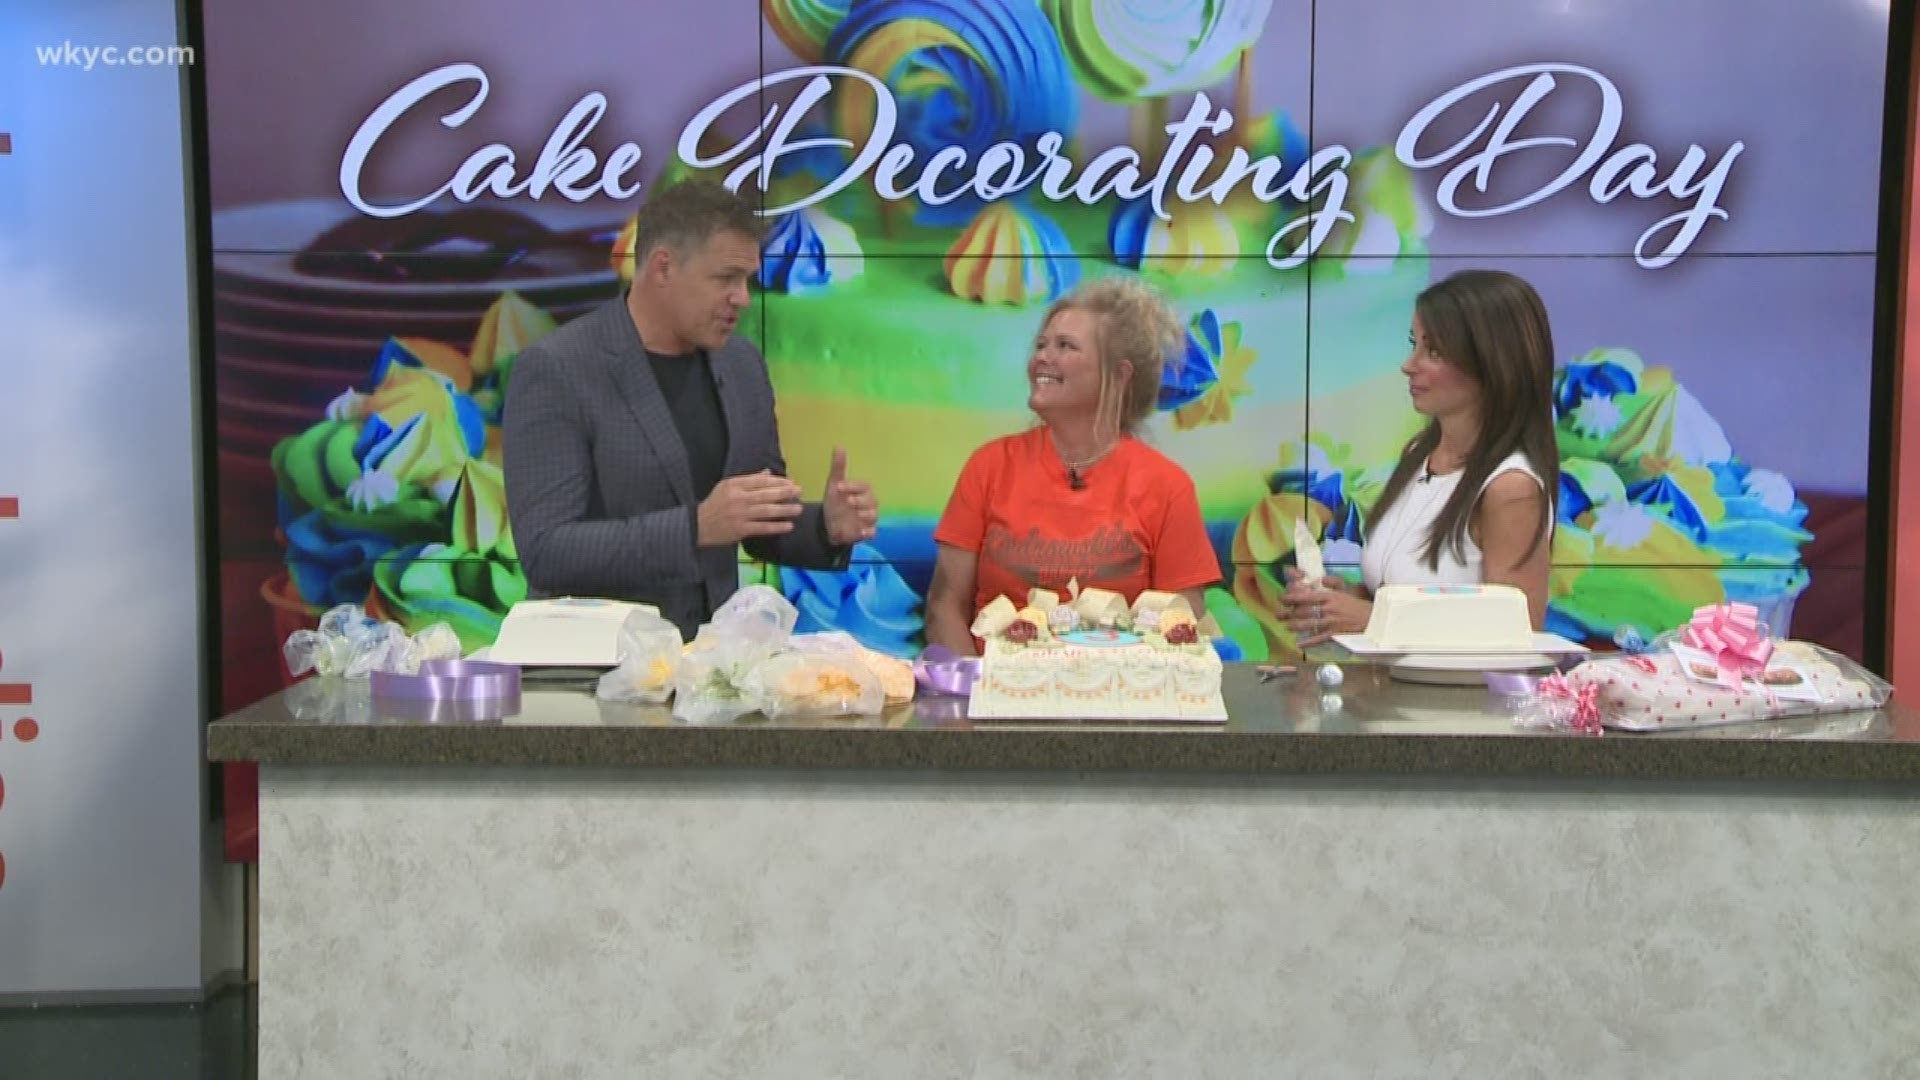 Superb Lunch Break Gets A Lesson On National Cake Decorating Day Funny Birthday Cards Online Alyptdamsfinfo